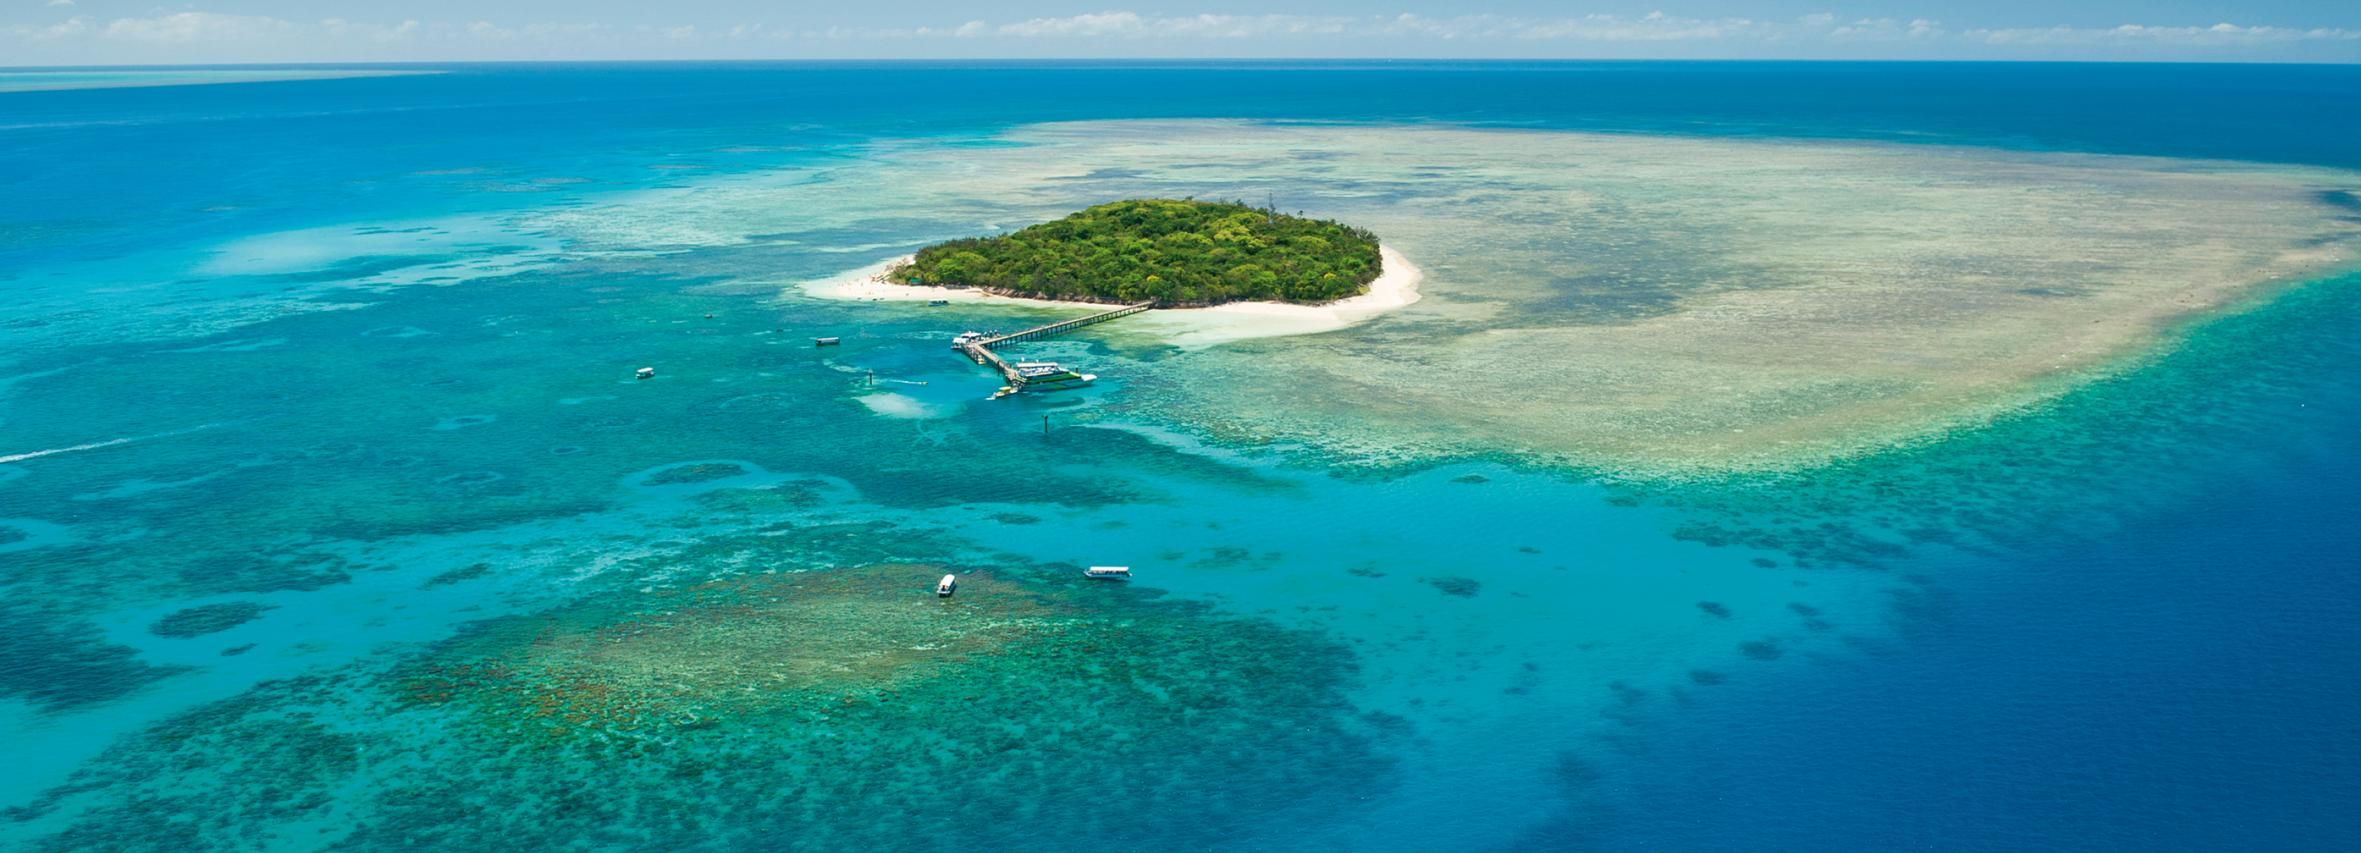 Cairns: Scenic Reef Plane Flight and Green Island Cruise